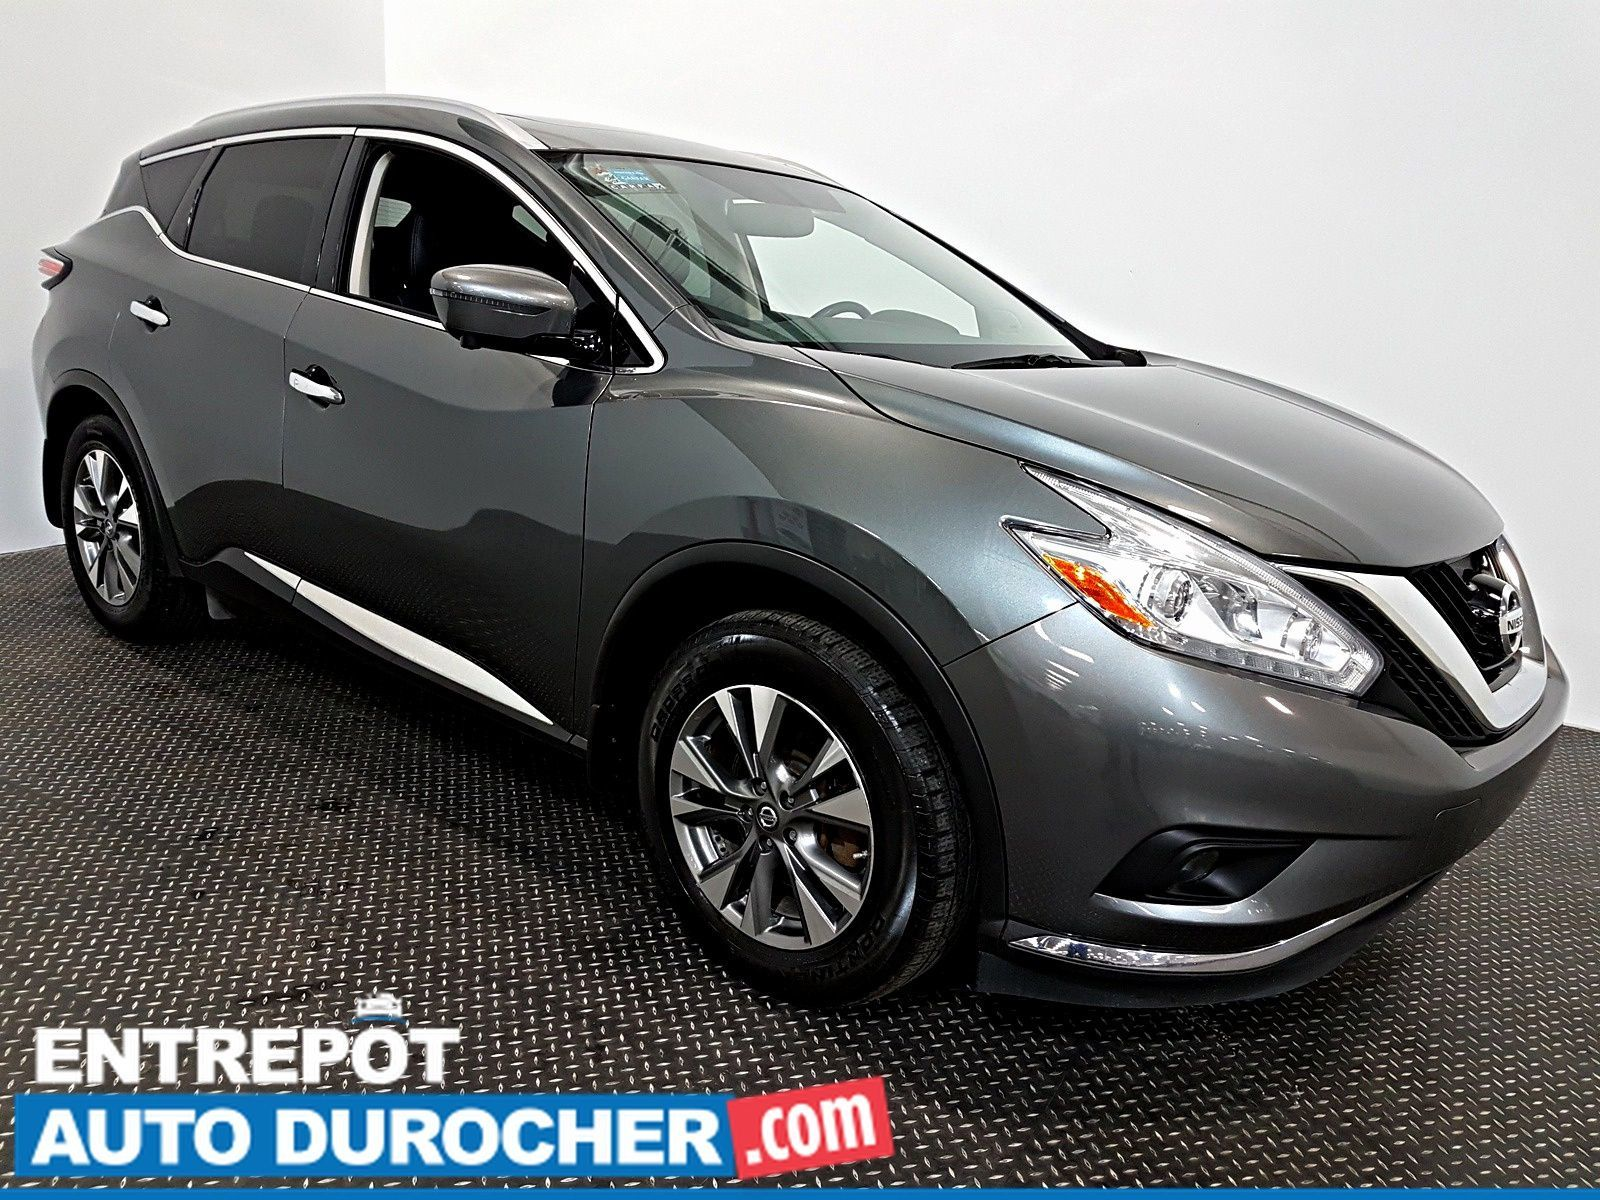 2016 Nissan Murano SL AWD NAVIGATION TOIT OUVRANT - A/C - Cuir